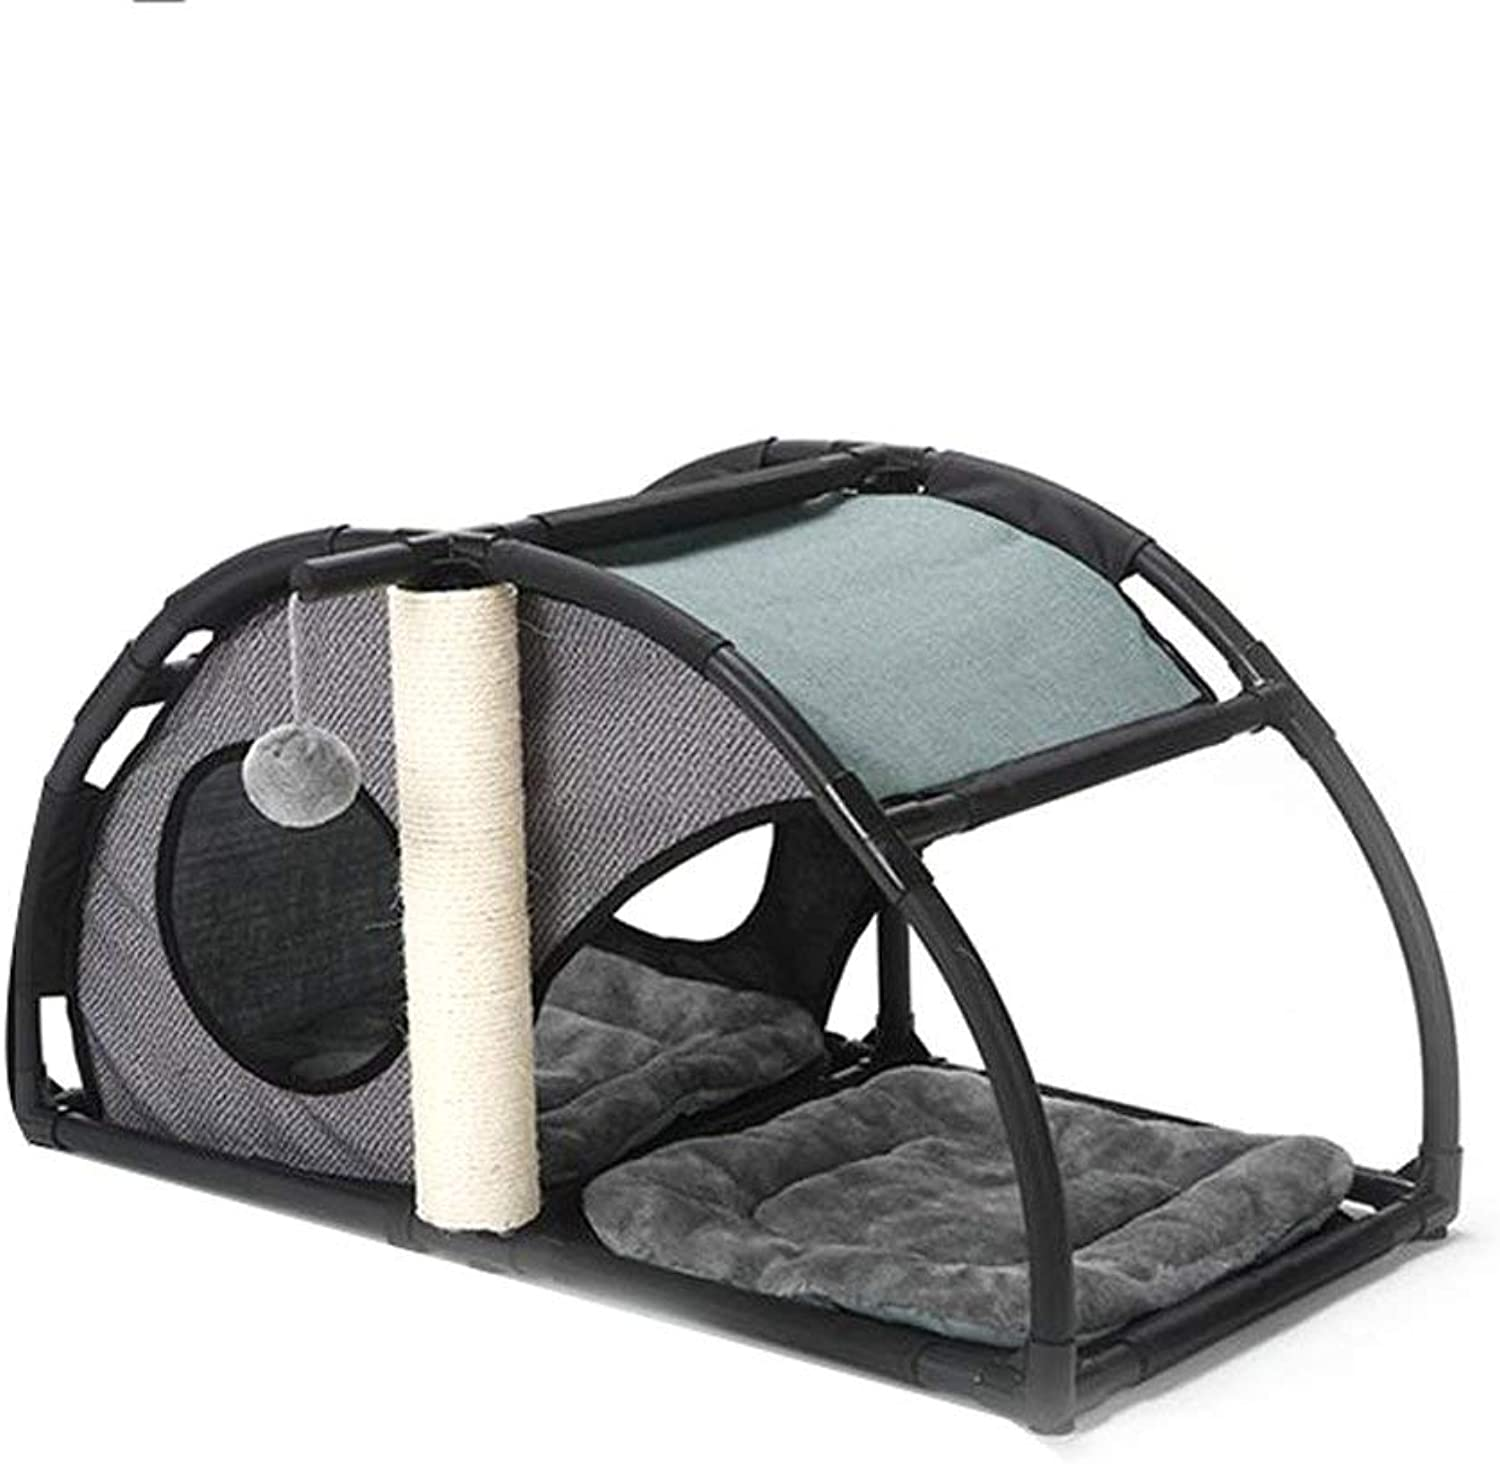 YQSMYSW Cat Climbing Frame Cat Toy Pet House Cat House Dog House Kennel Pet Supplies Pet Bed